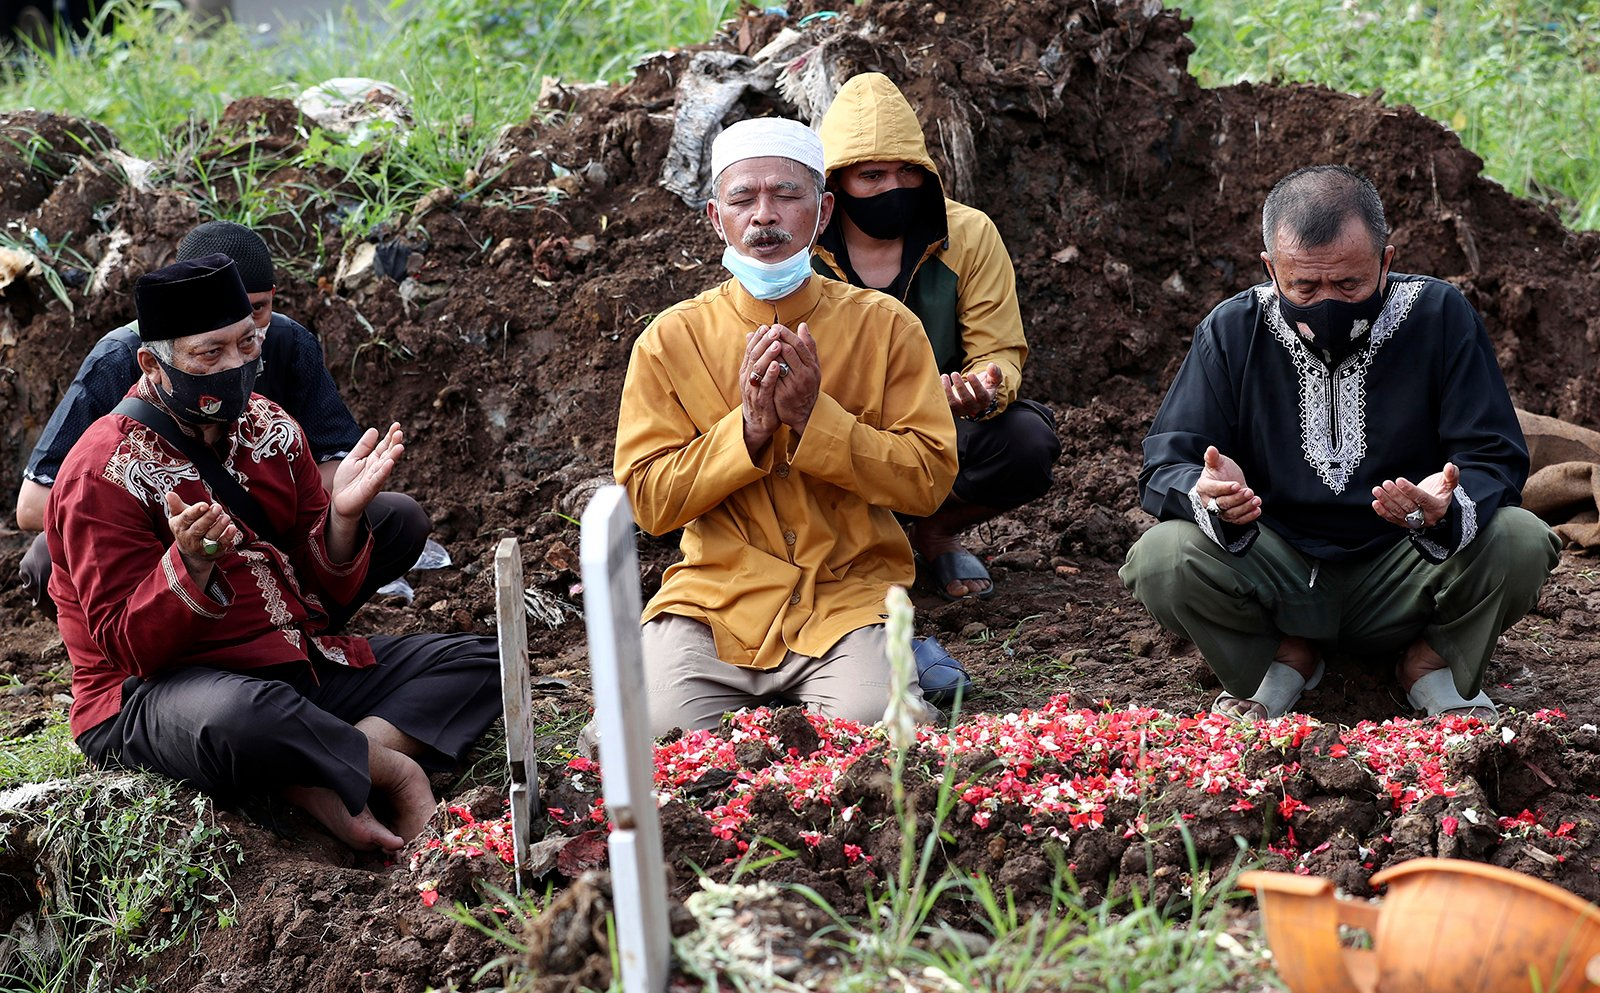 Family members pray during the burial of their relative at a section of Srengseng Sawah Cemetery reserved for those who died of COVID-19, in Jakarta, Indonesia, Wednesday, June 9, 2021. The world's fourth-most populous country, with about 275 million people, has reported more coronavirus cases than any other Southeast Asian country. (AP Photo/Tatan Syuflana)